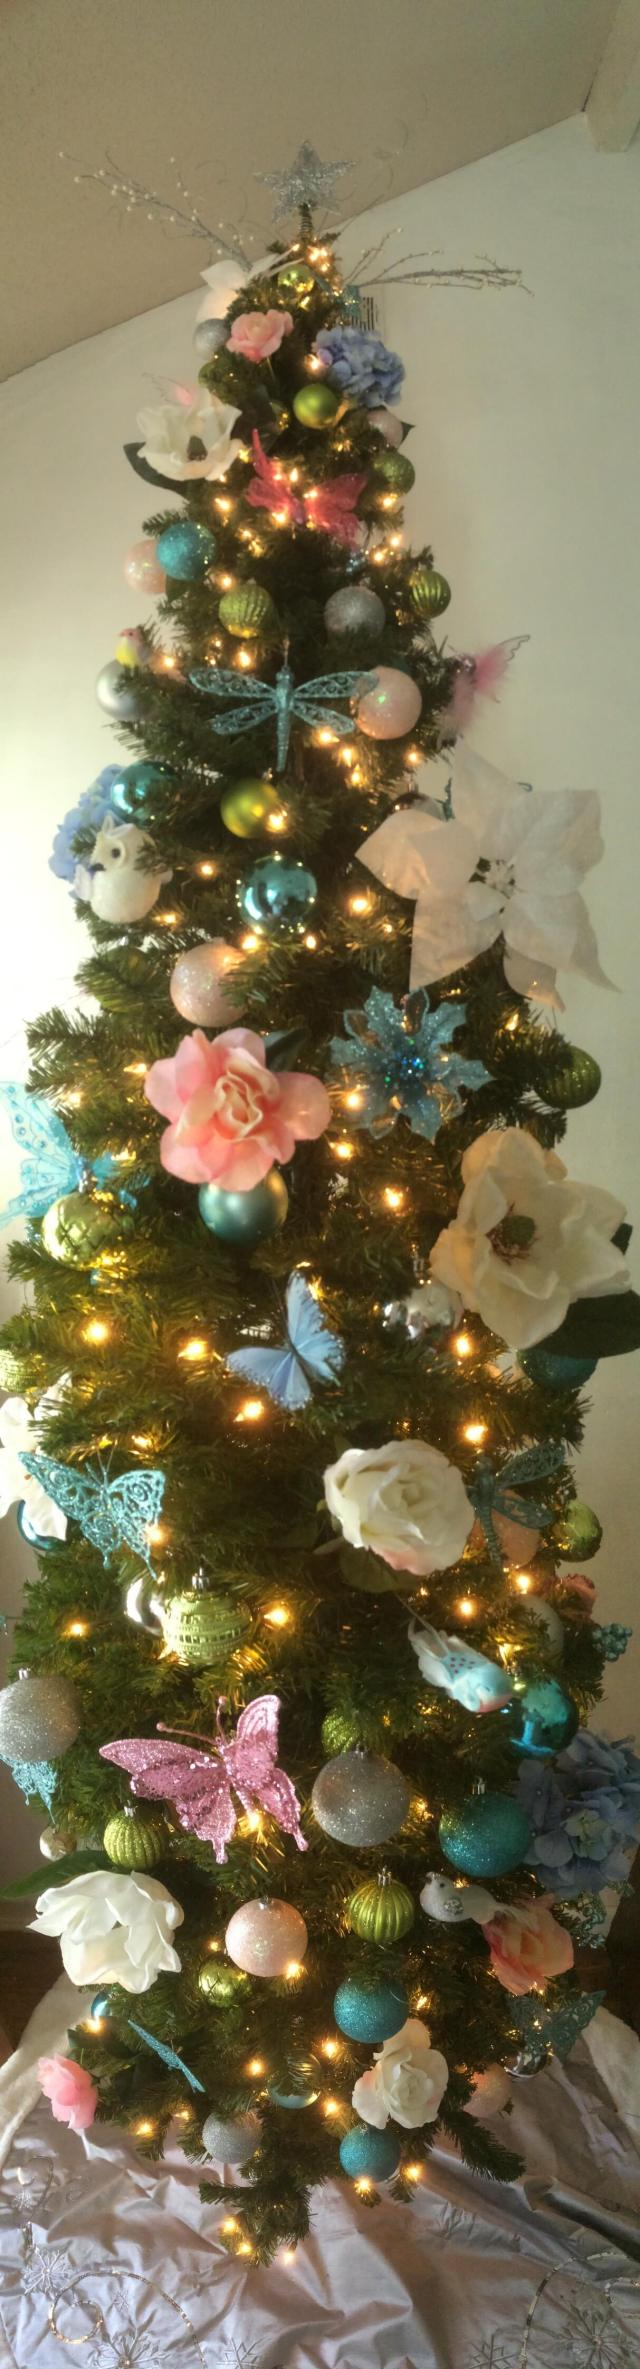 My Christmas Tree 2016 has a garden theme.